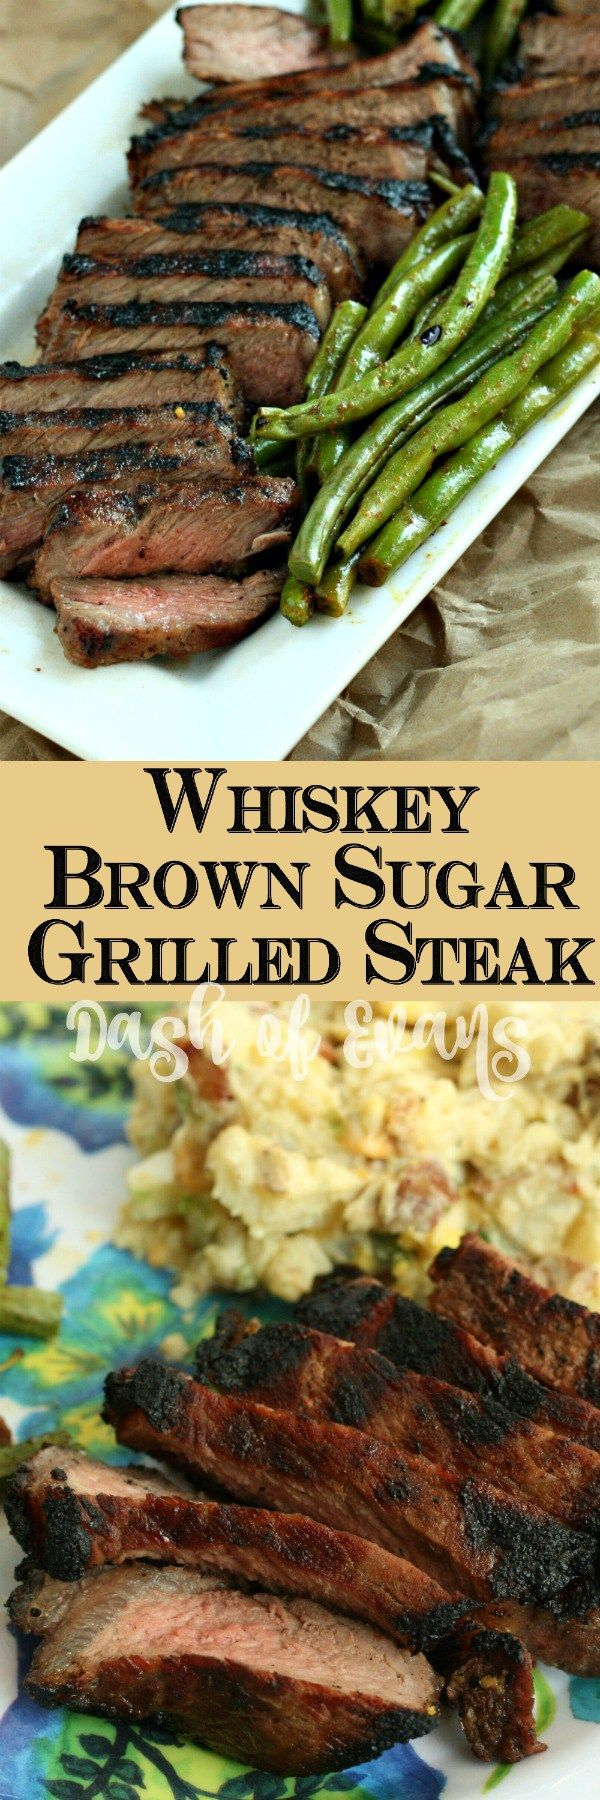 Whiskey Brown Sugar Grilled Steak | Recipe | Perfect grill ...